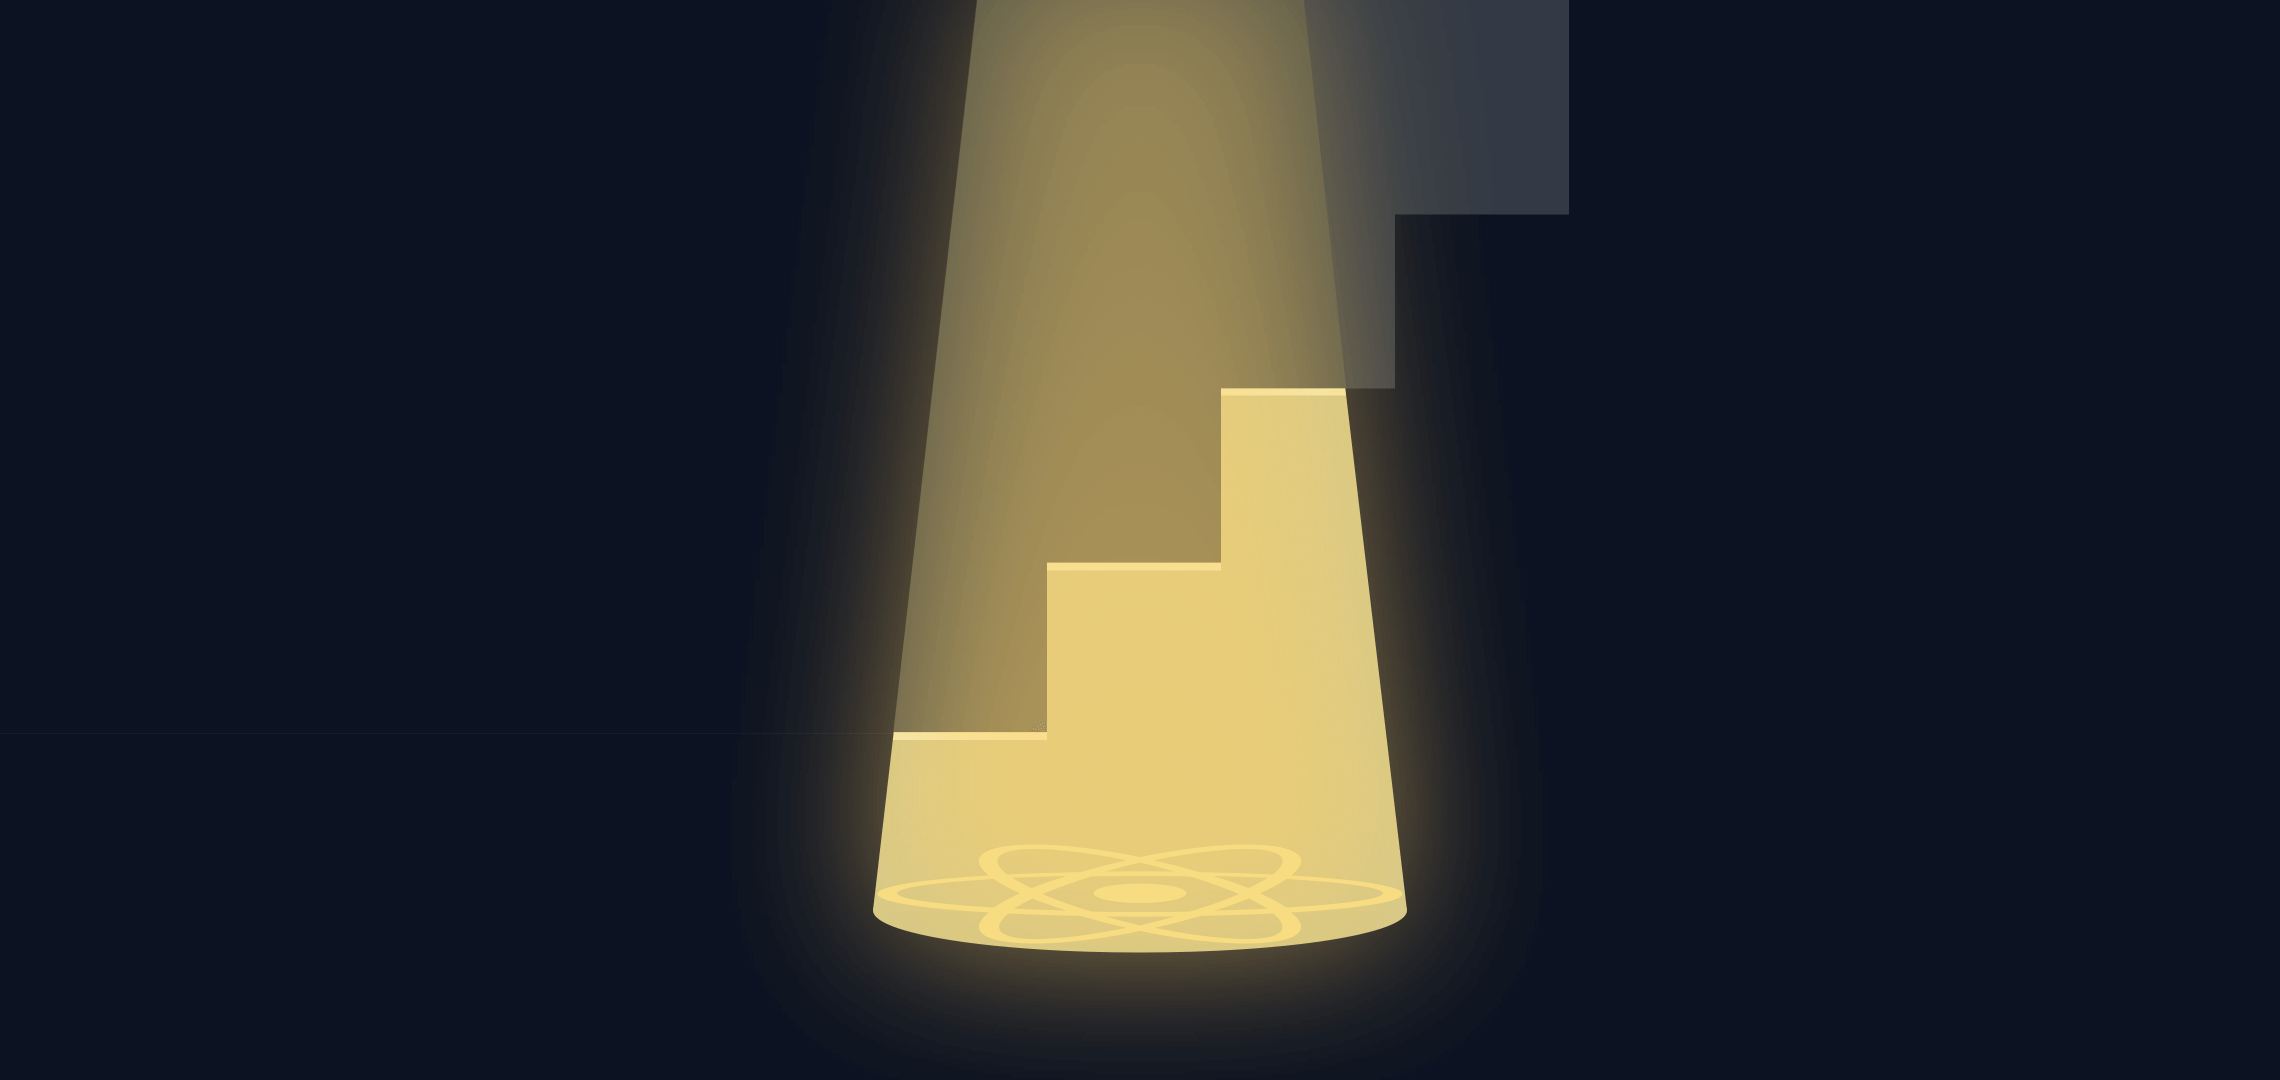 illustration of stairs in darkness with spotlight shedding light as a metaphor for react.js